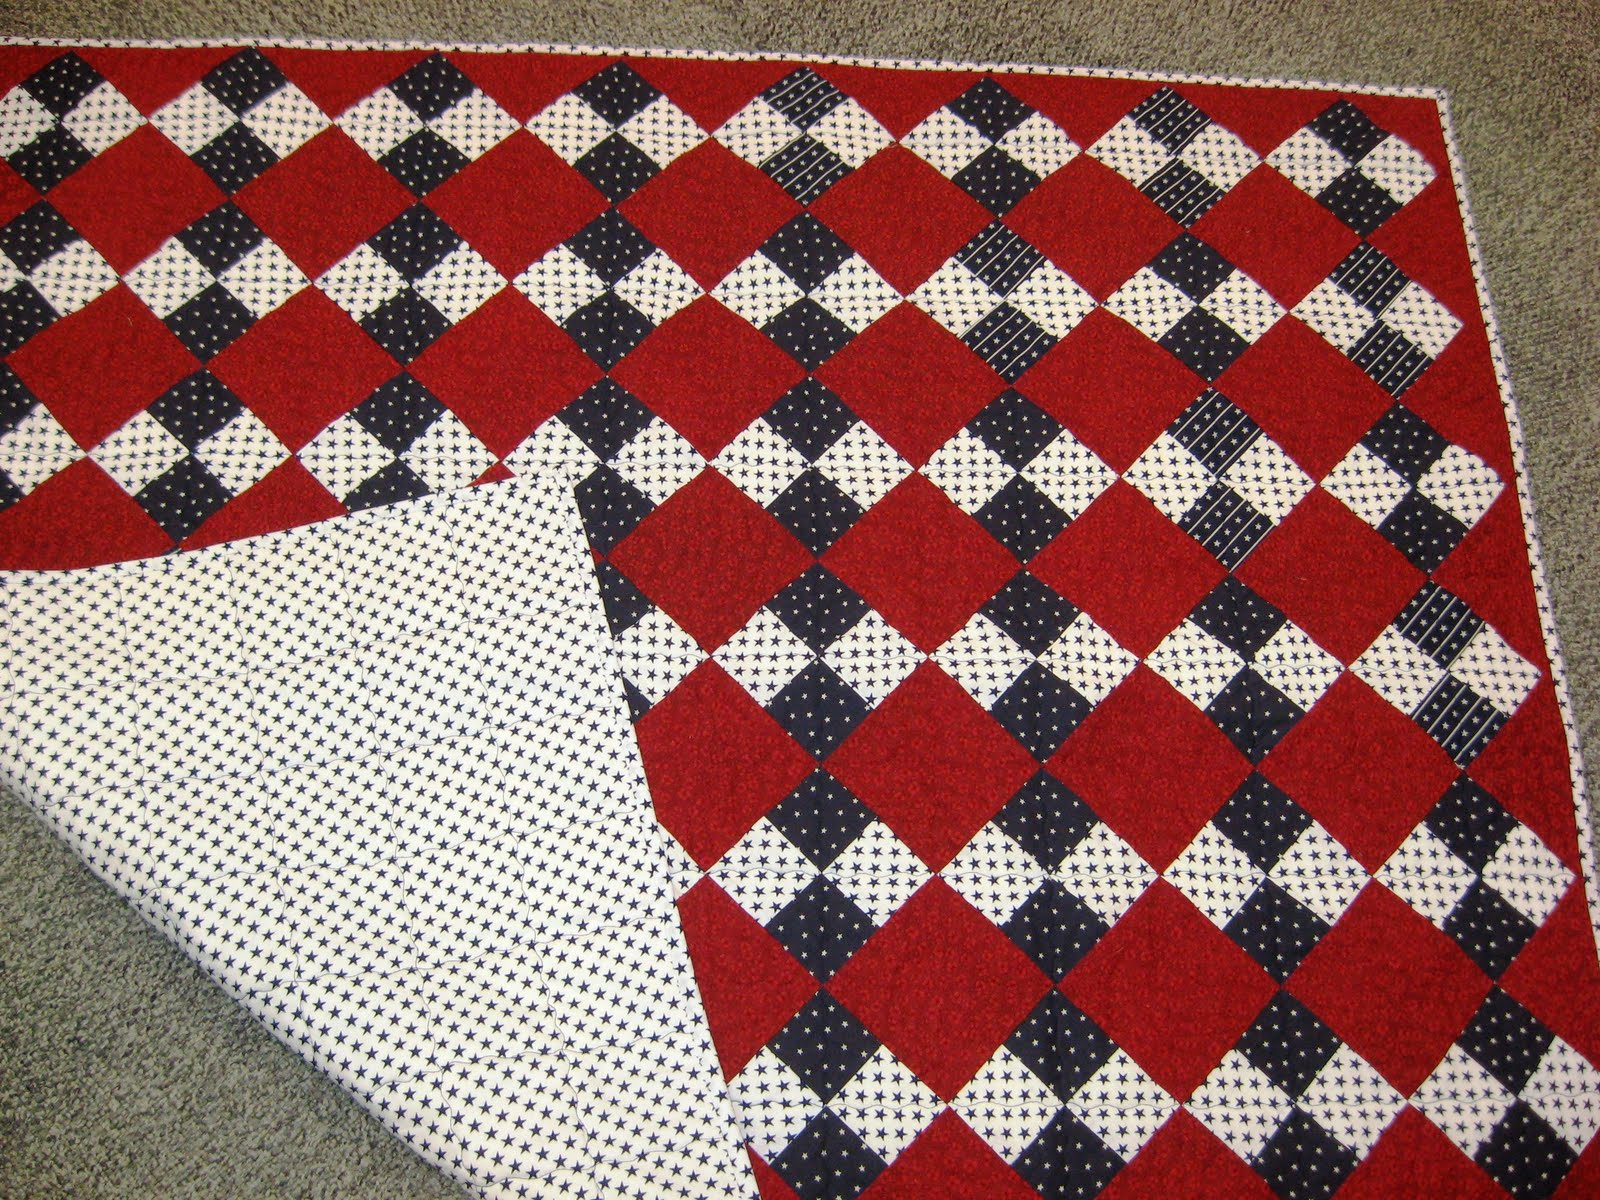 TOWN BEES: Veterans Day Quilt 2010